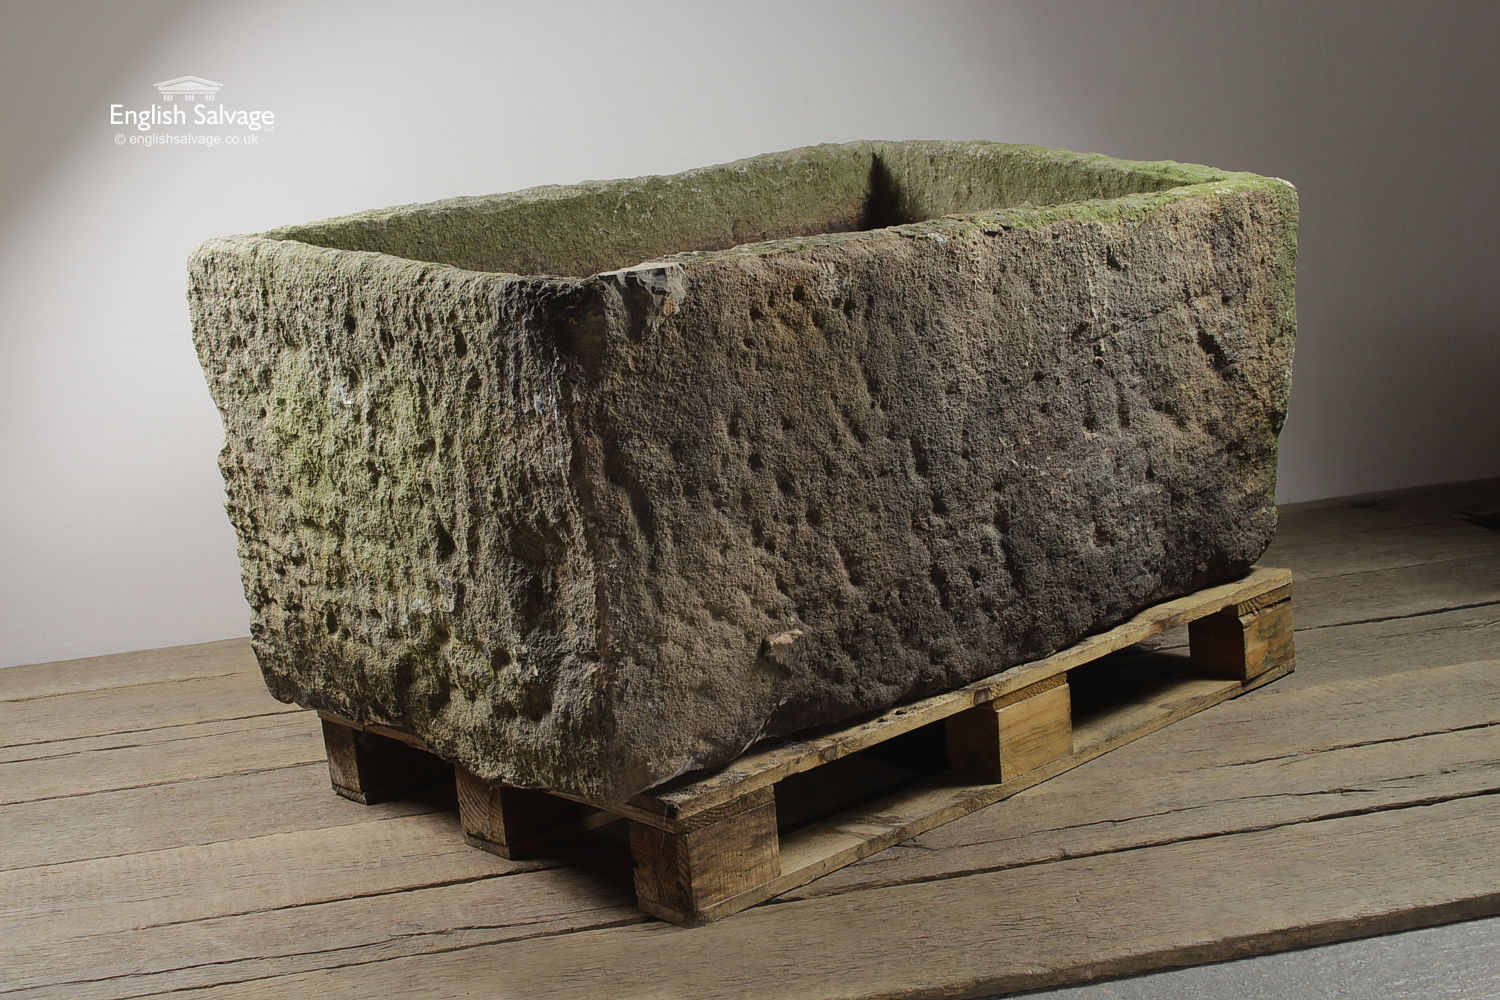 Salvaged Large Deep Rectangular Stone Trough